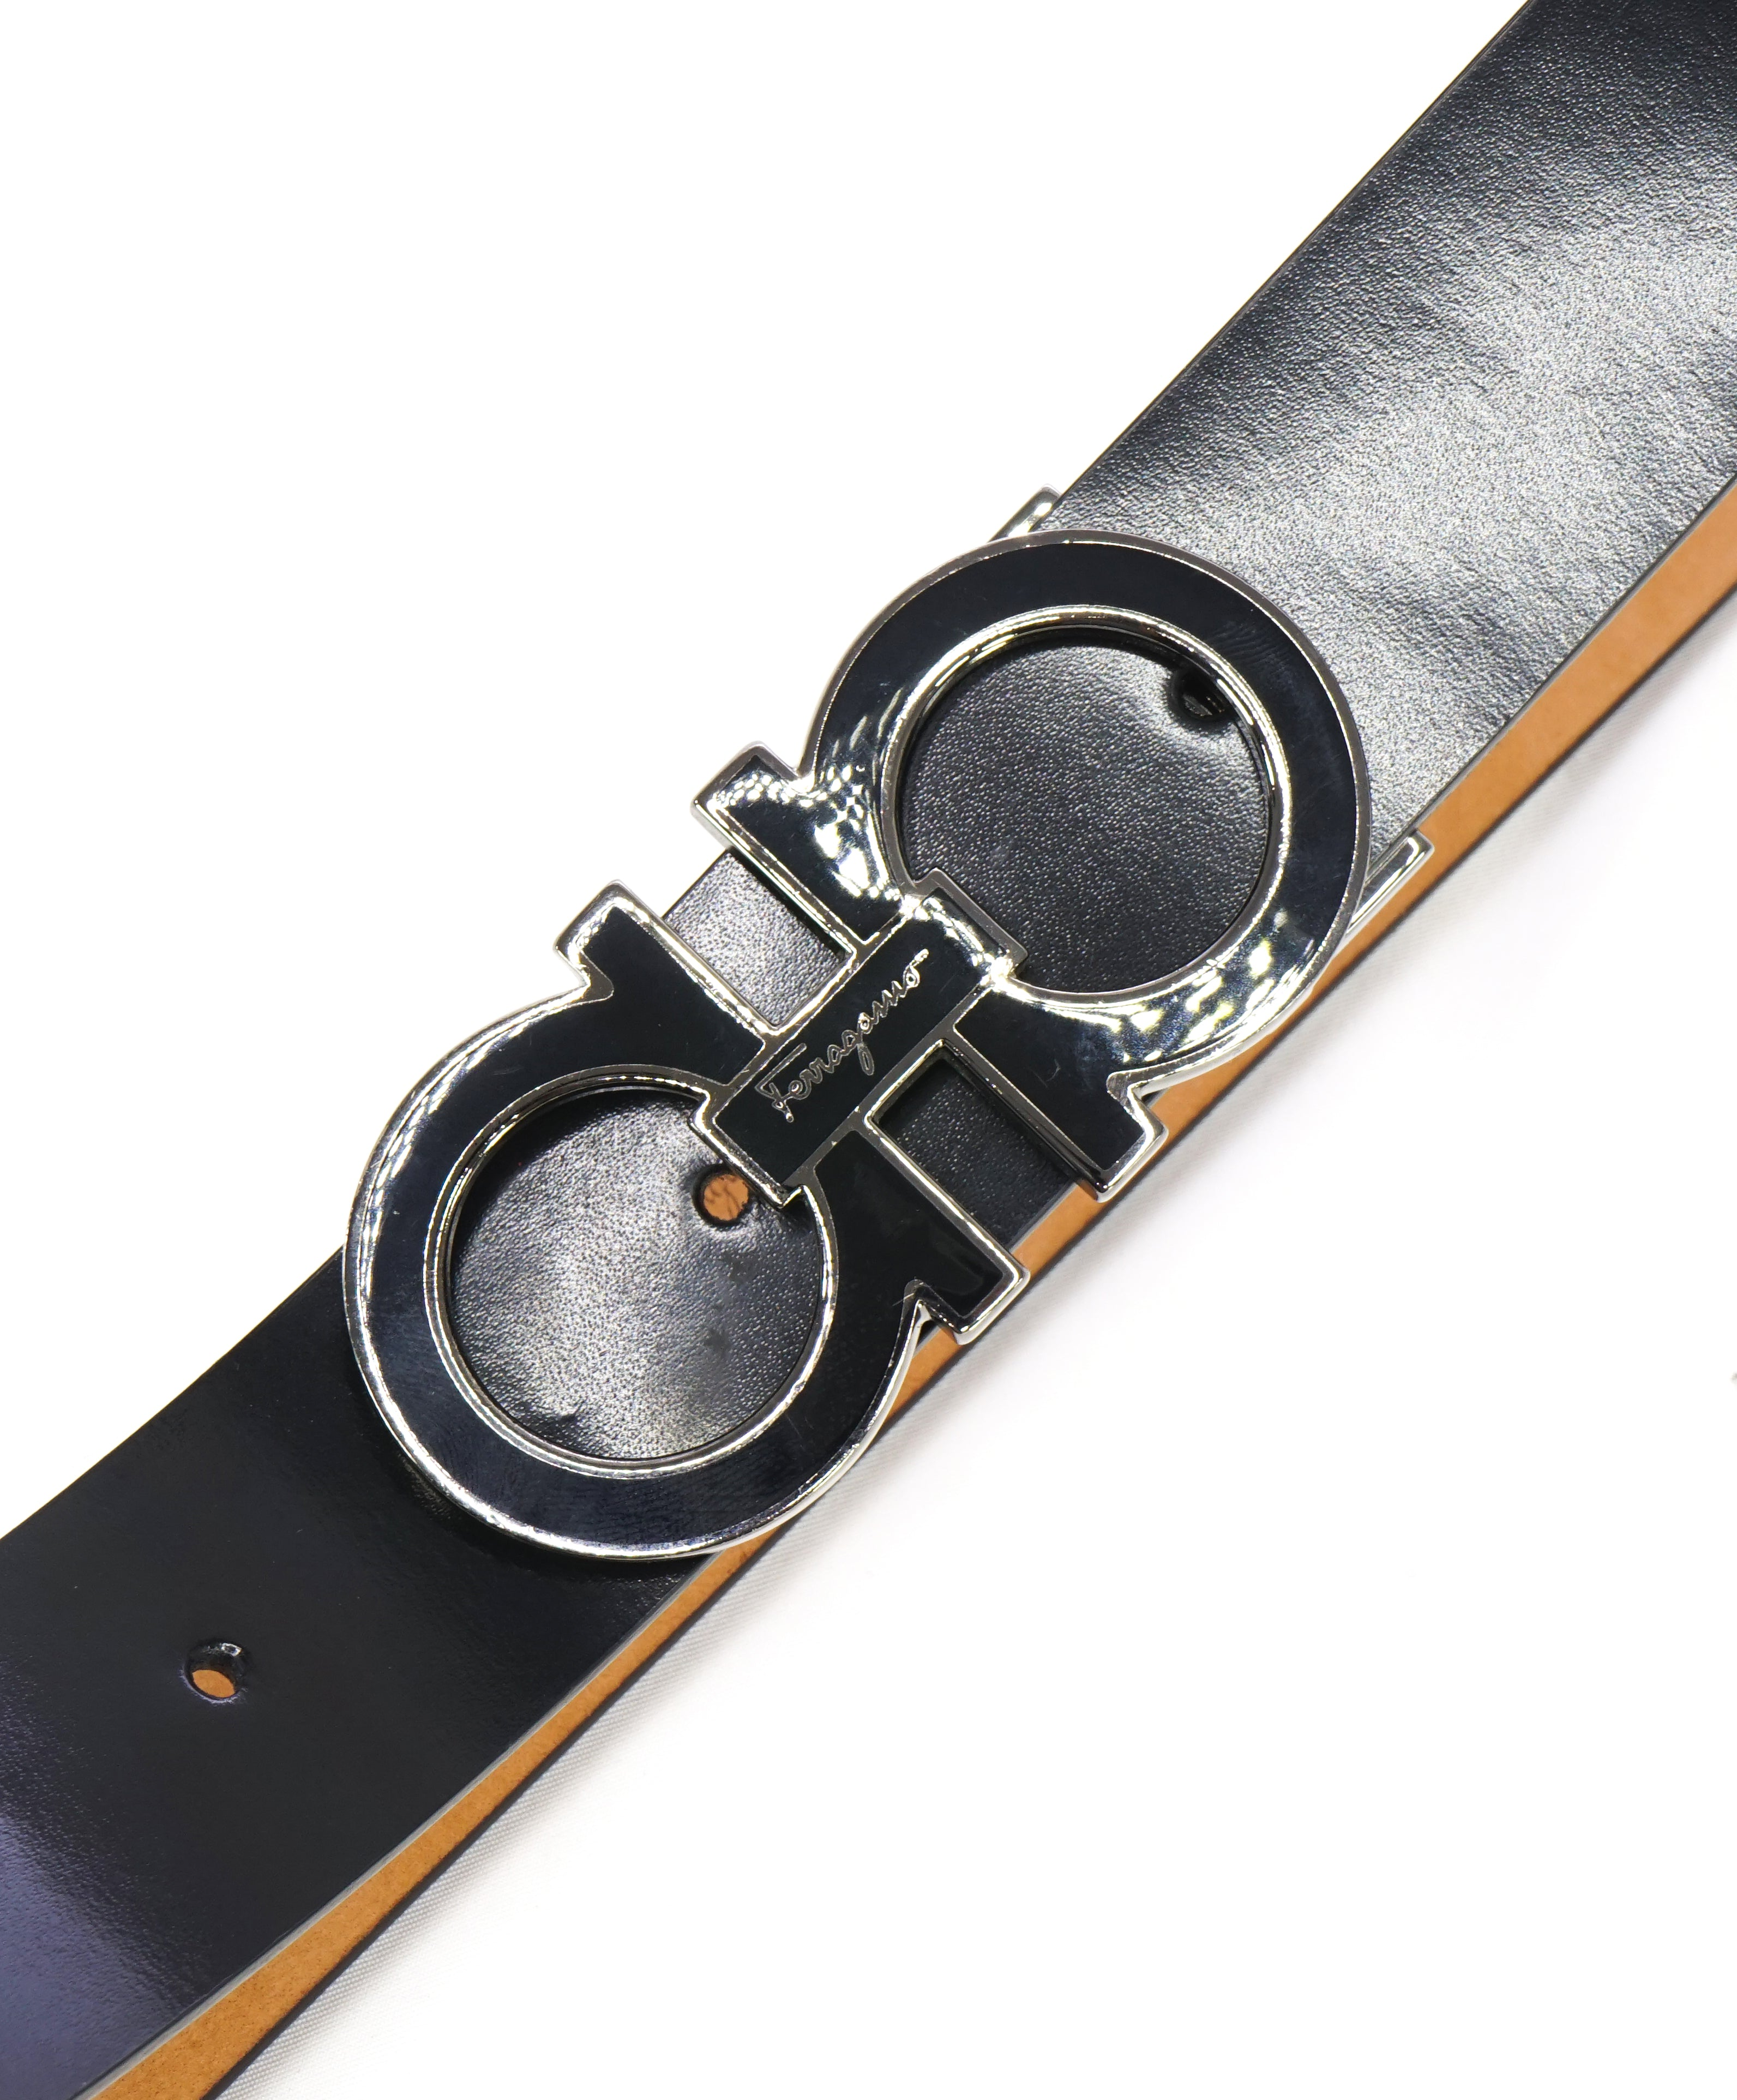 SALVATORE FERRAGAMO - Gloss Finish Black Gancini Buckle Leather Belt - 44W